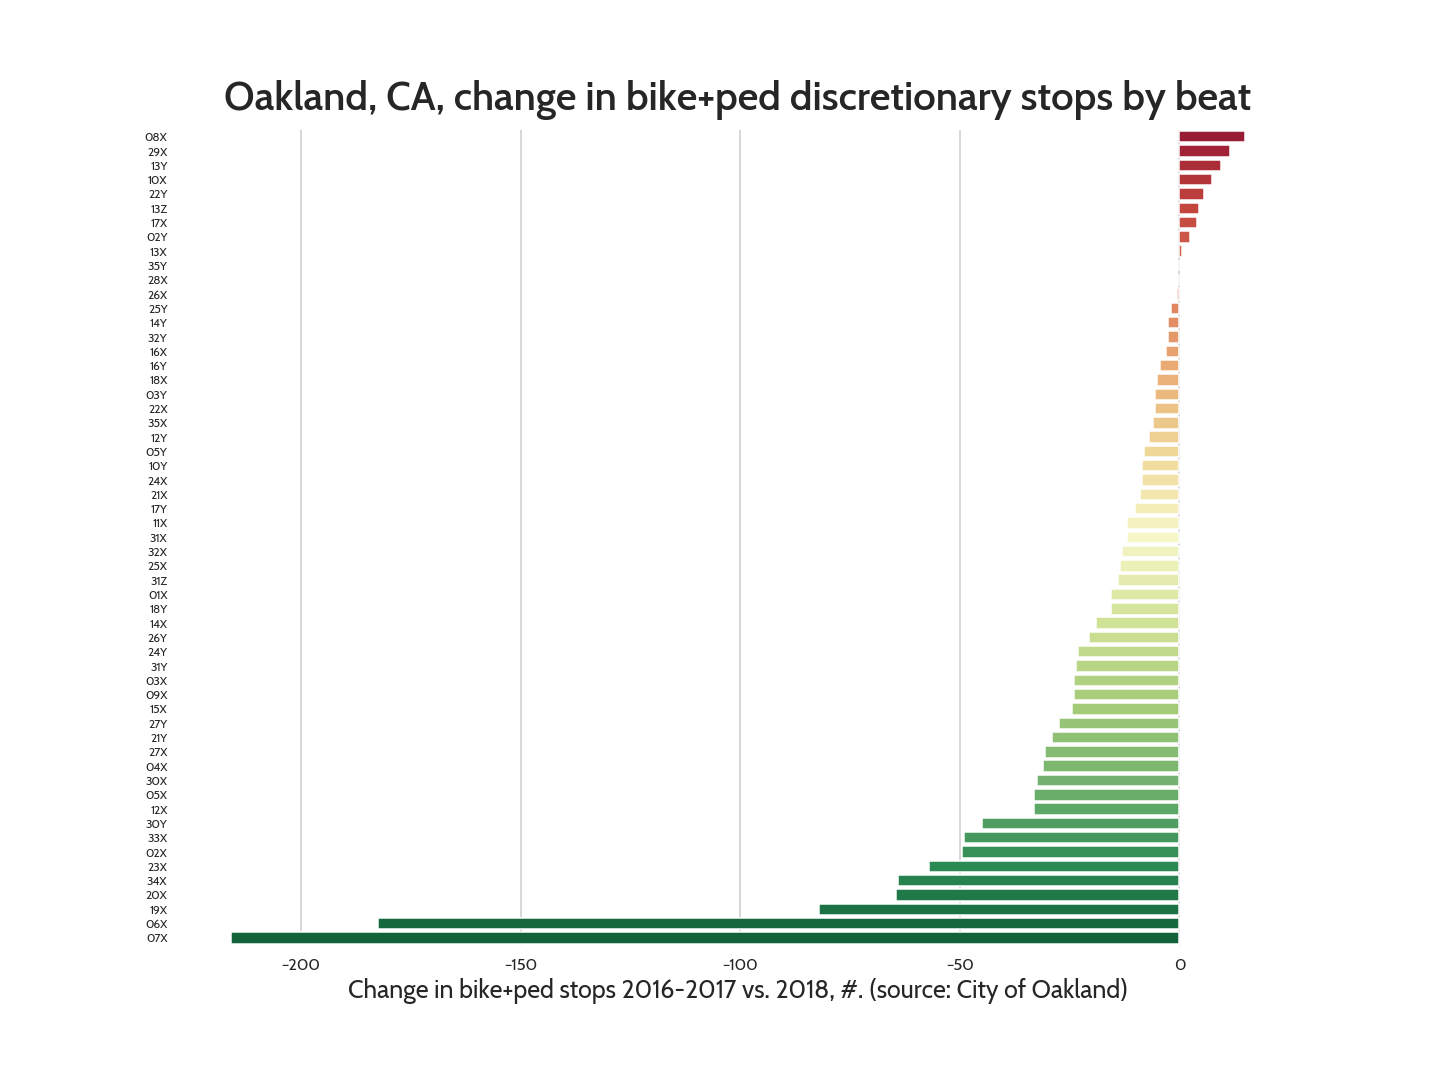 Bar graph showing change in police stops by beat in Oakland. A few have a small increase; most have decreases, some quite large, over 200 fewer stops